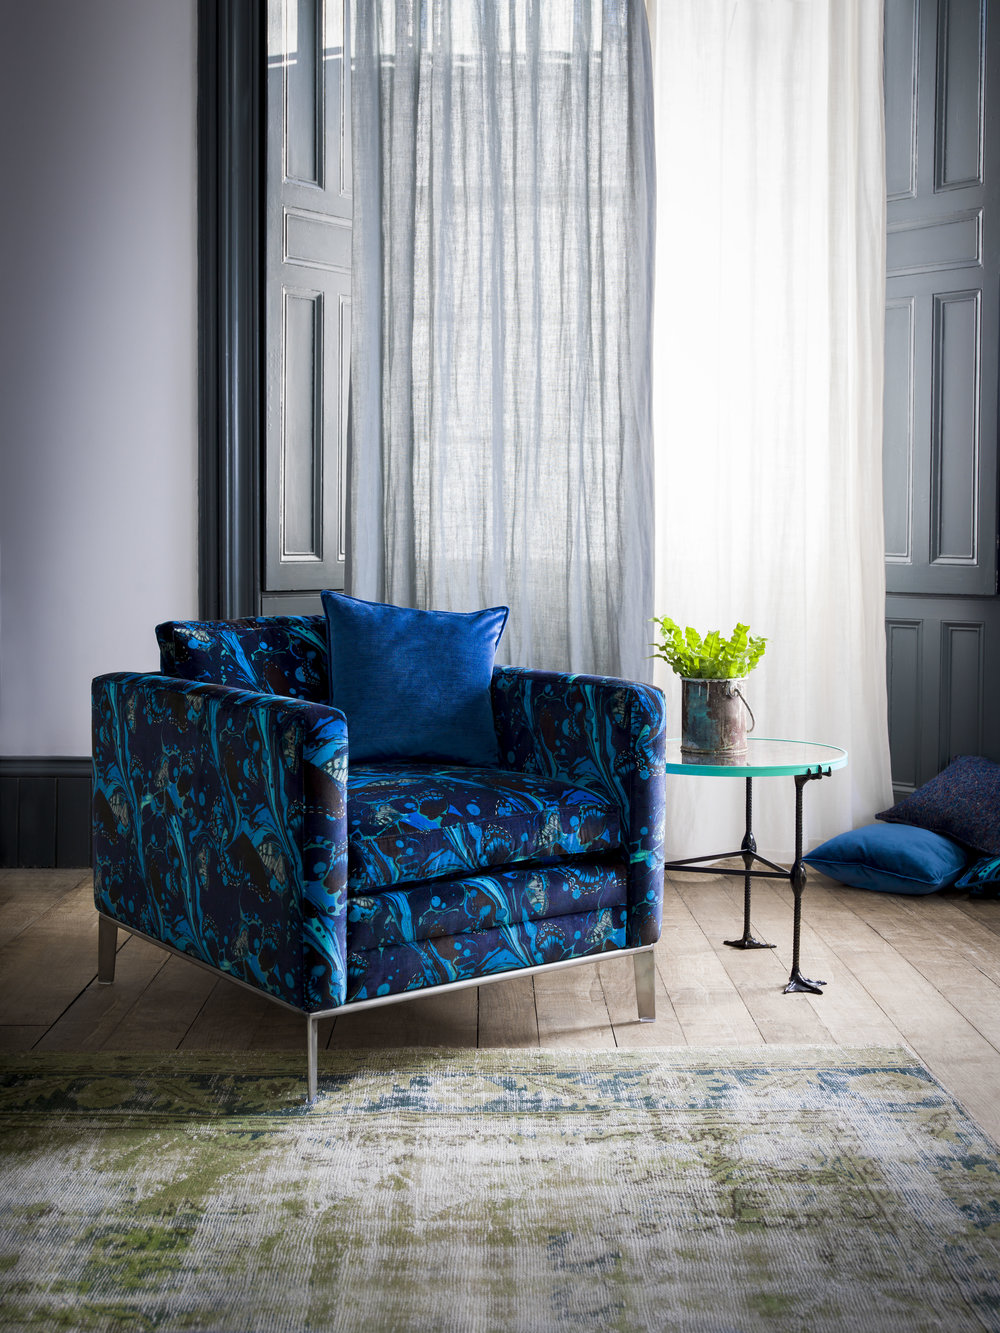 DURESTA-l-Minnelli-Chair-in-Marble-Butterfly-Electric-Blue-£1849-with-Estelle-Blue-Scatter-Cushion-£63-Lamp-Table-with-Solid-Lacquer-Top-£2277.jpg